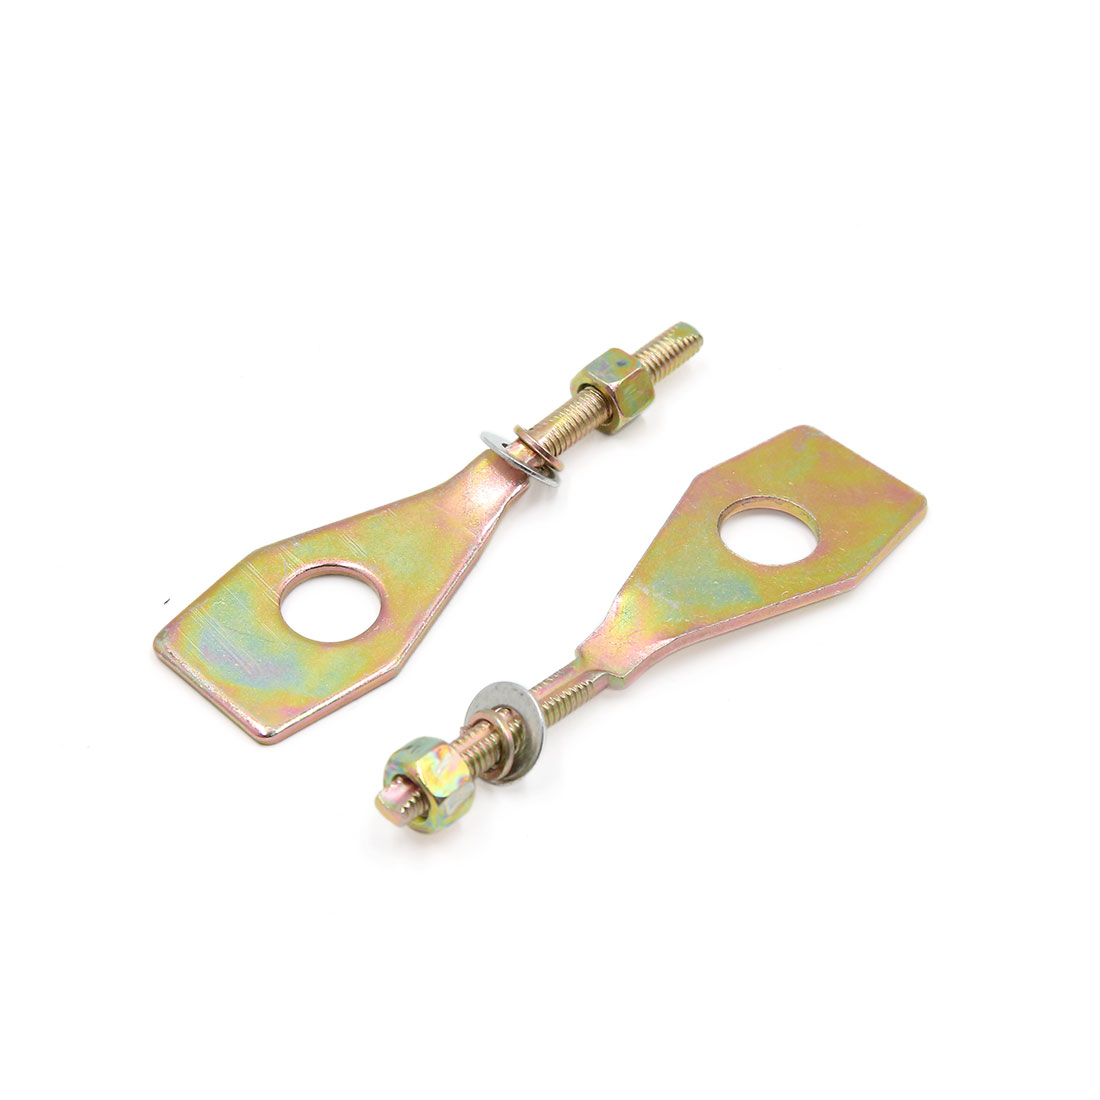 Pair 13mm Dia Hole Copper Tone Metal Chain Axle Adjuster Tensioner for Motorcycle